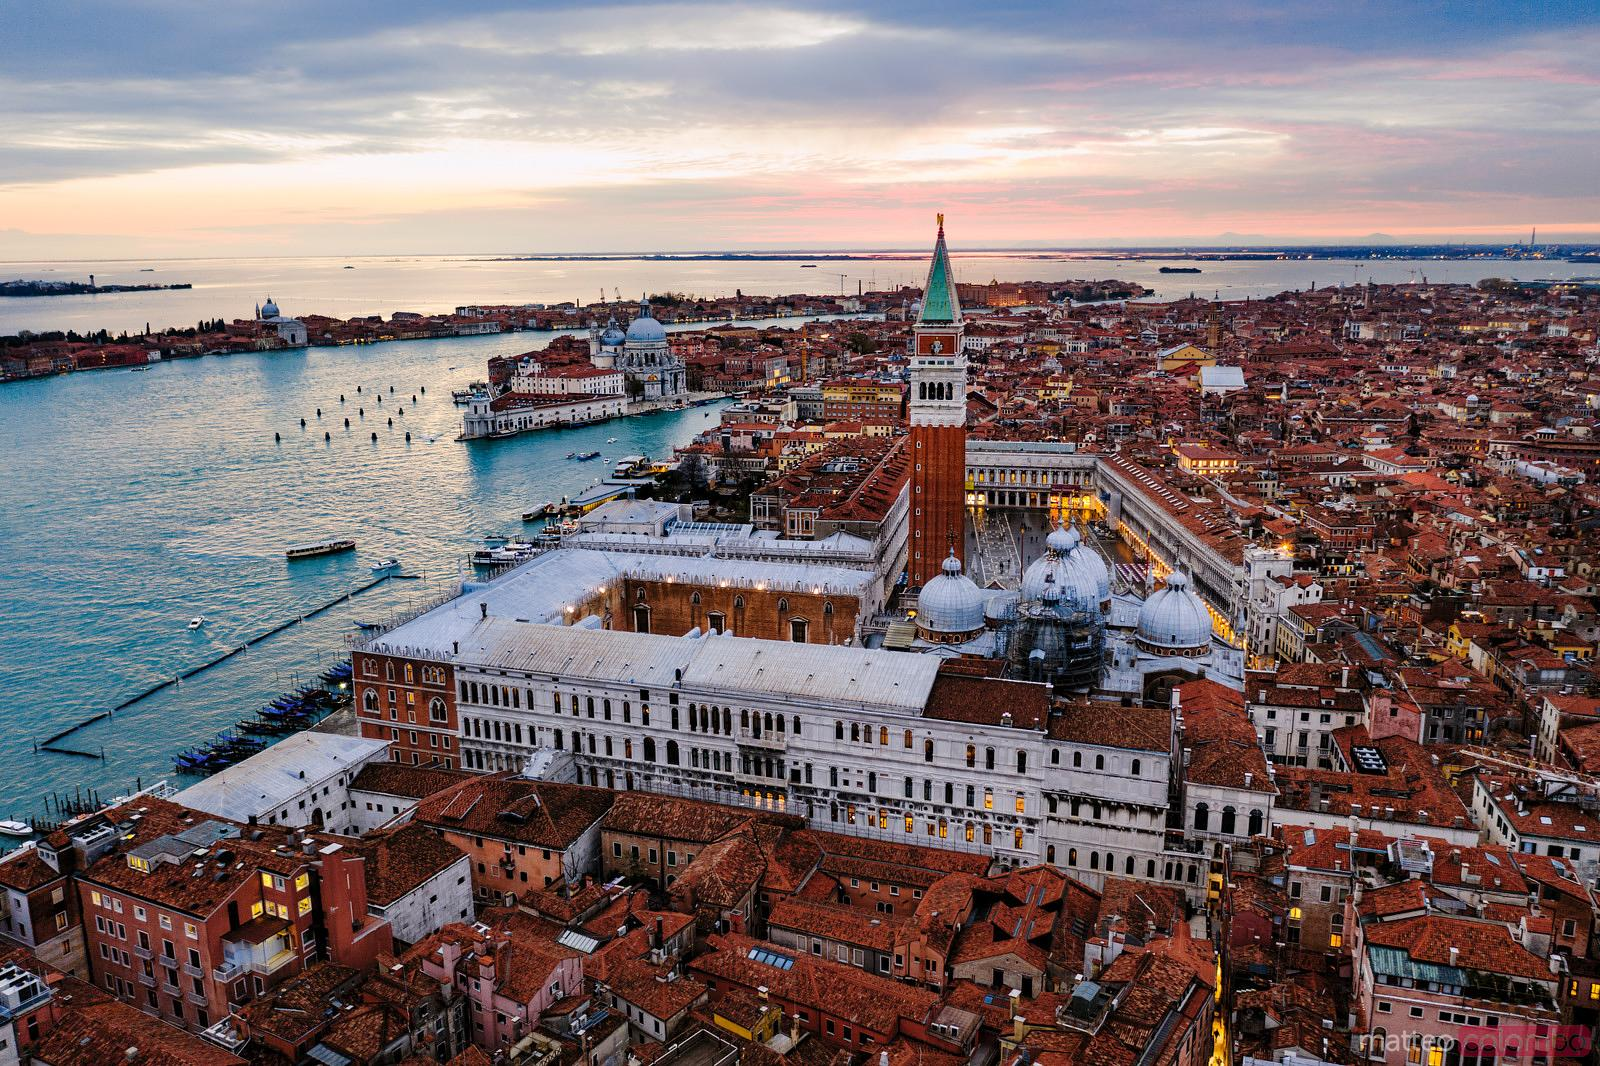 St Mark's square at sunset, aerial view, Venice